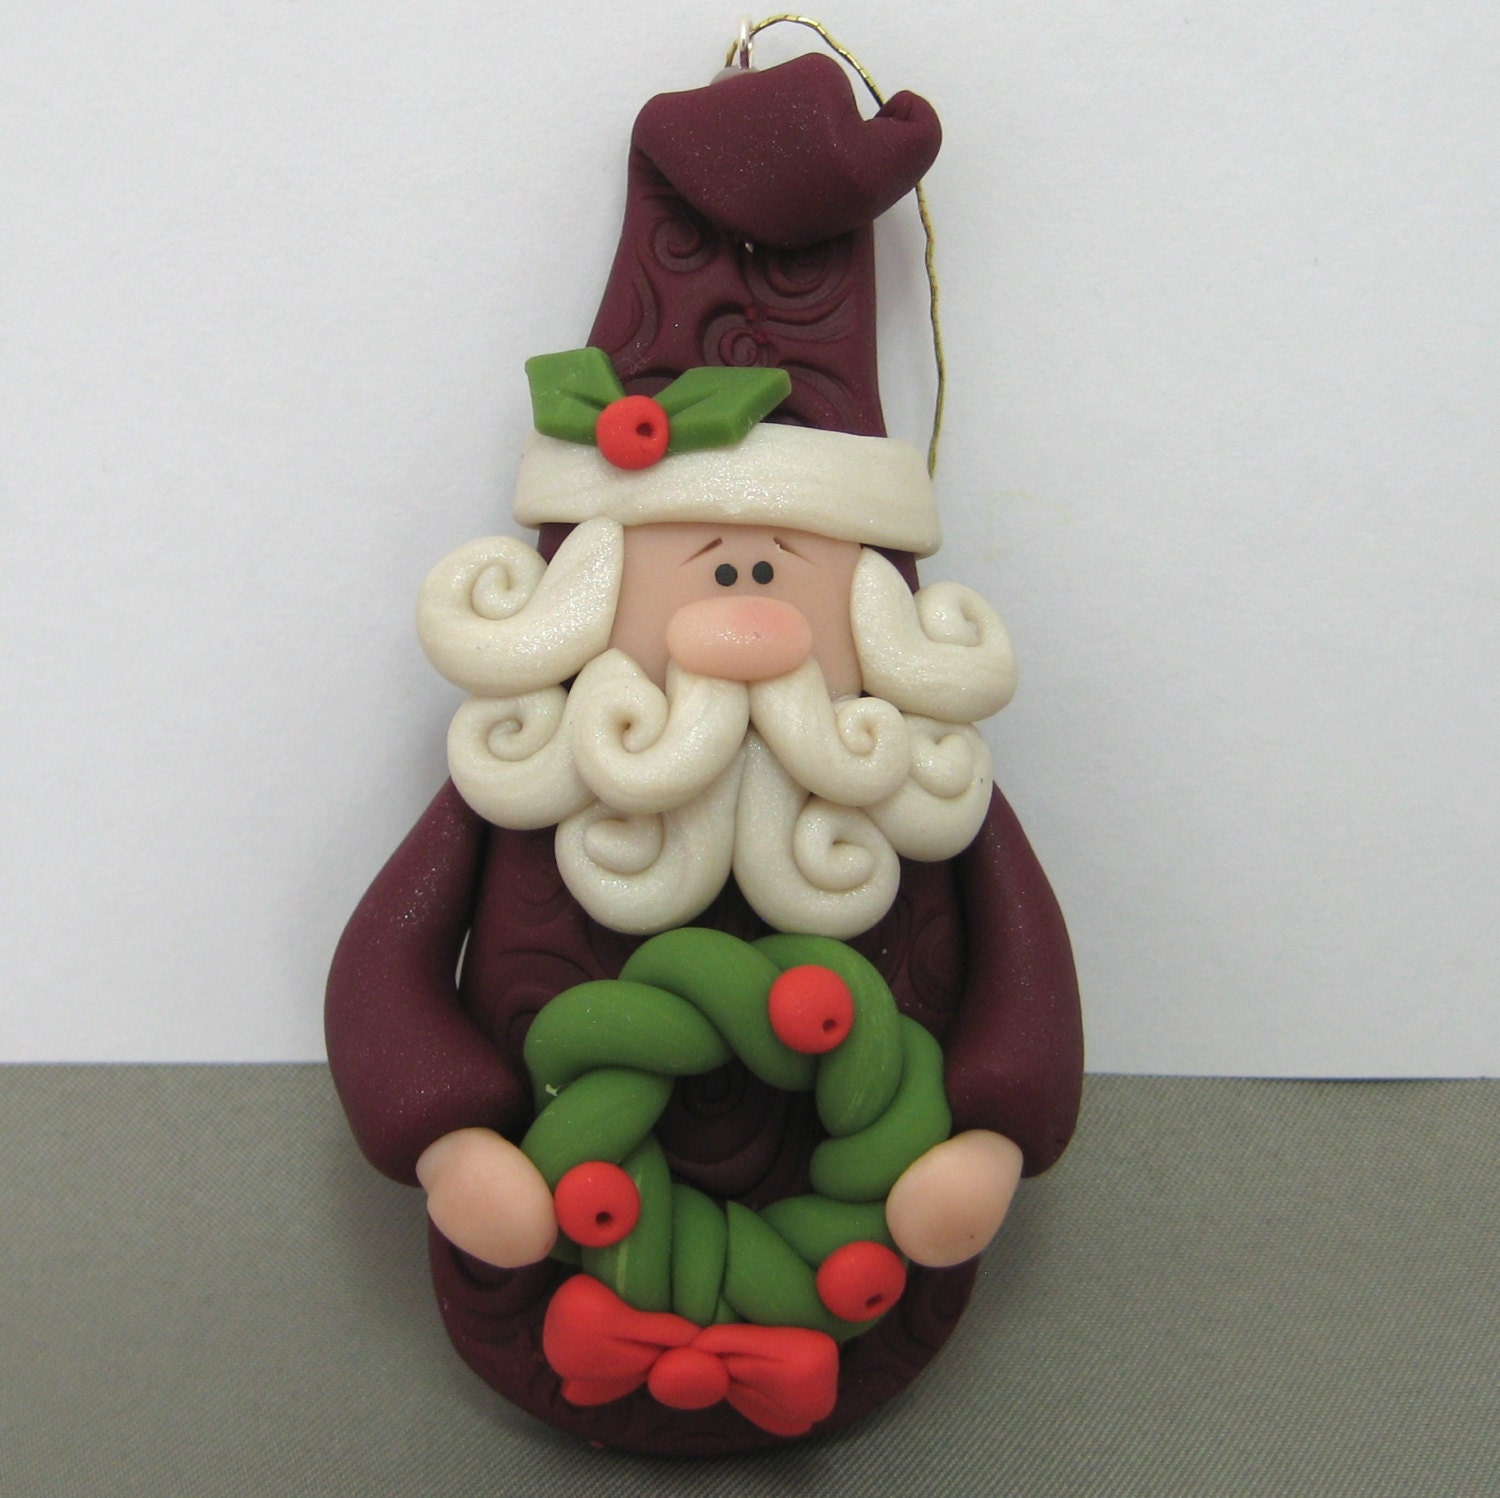 Polymer Clay Christmas Ornament: Old World Santa Polymer Clay Christmas Ornament Handmade